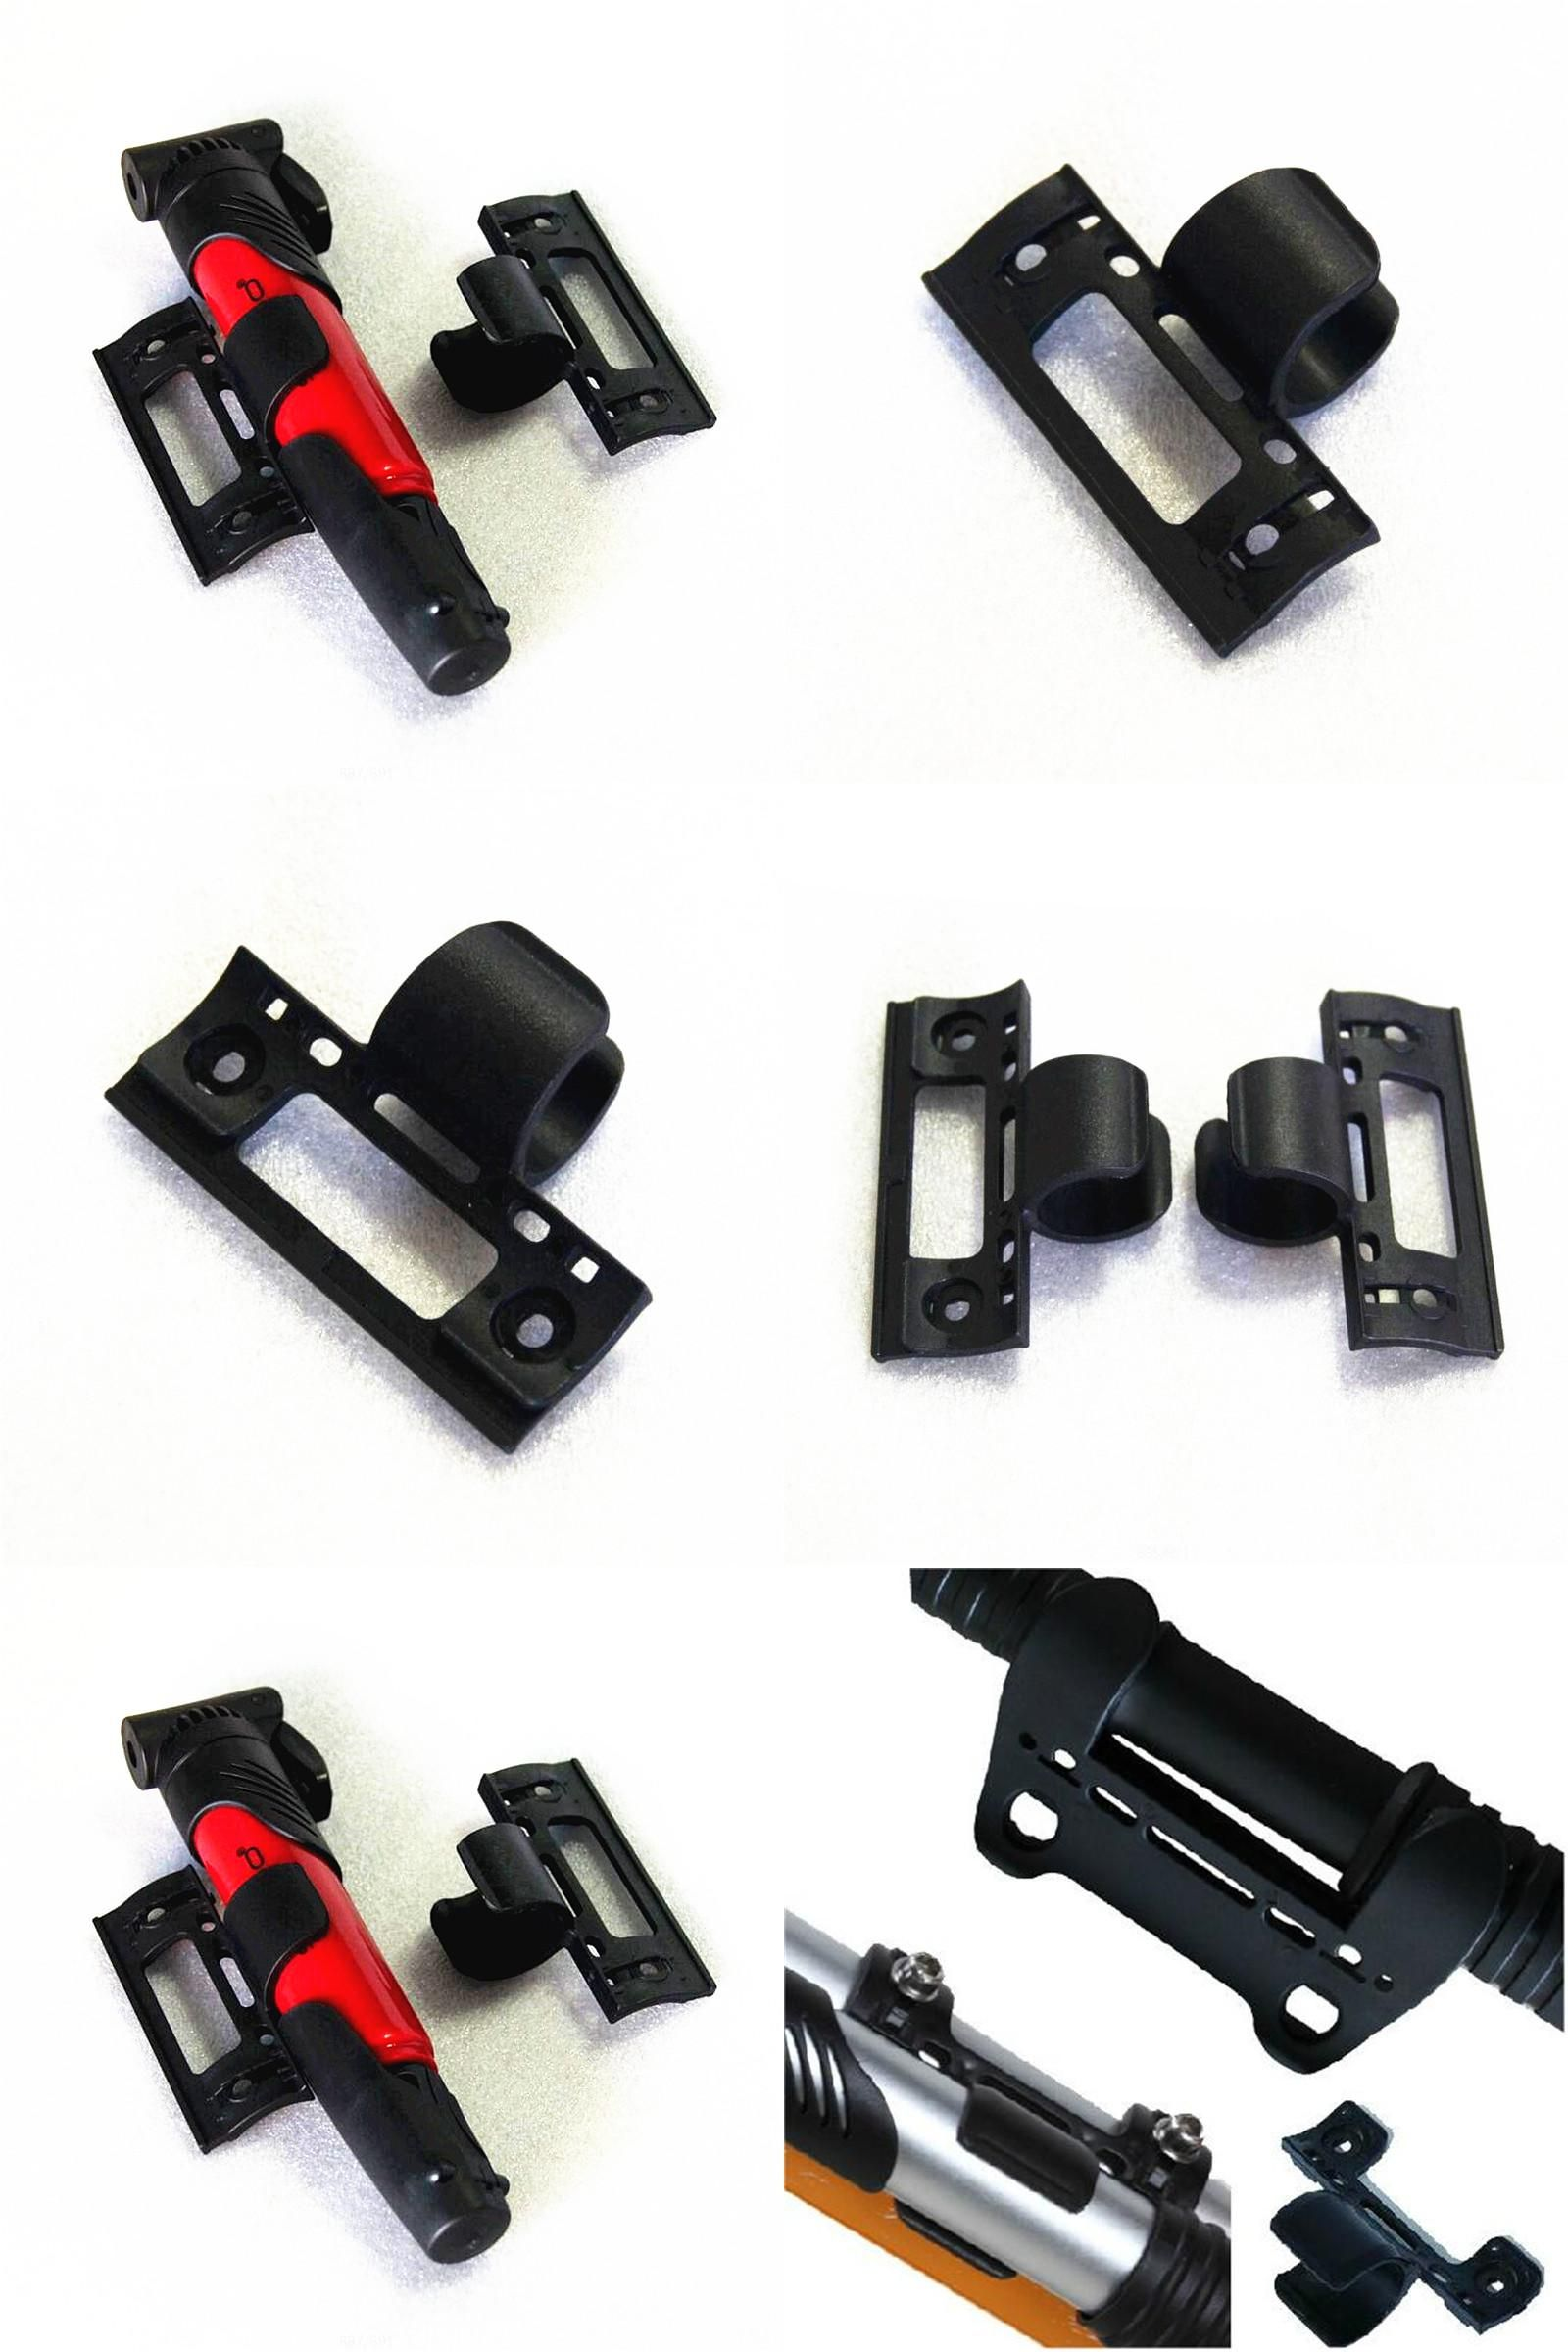 Retaining Clips Folder Bracket Holder Pump Cycling Bike Bicycle Pump Holder W